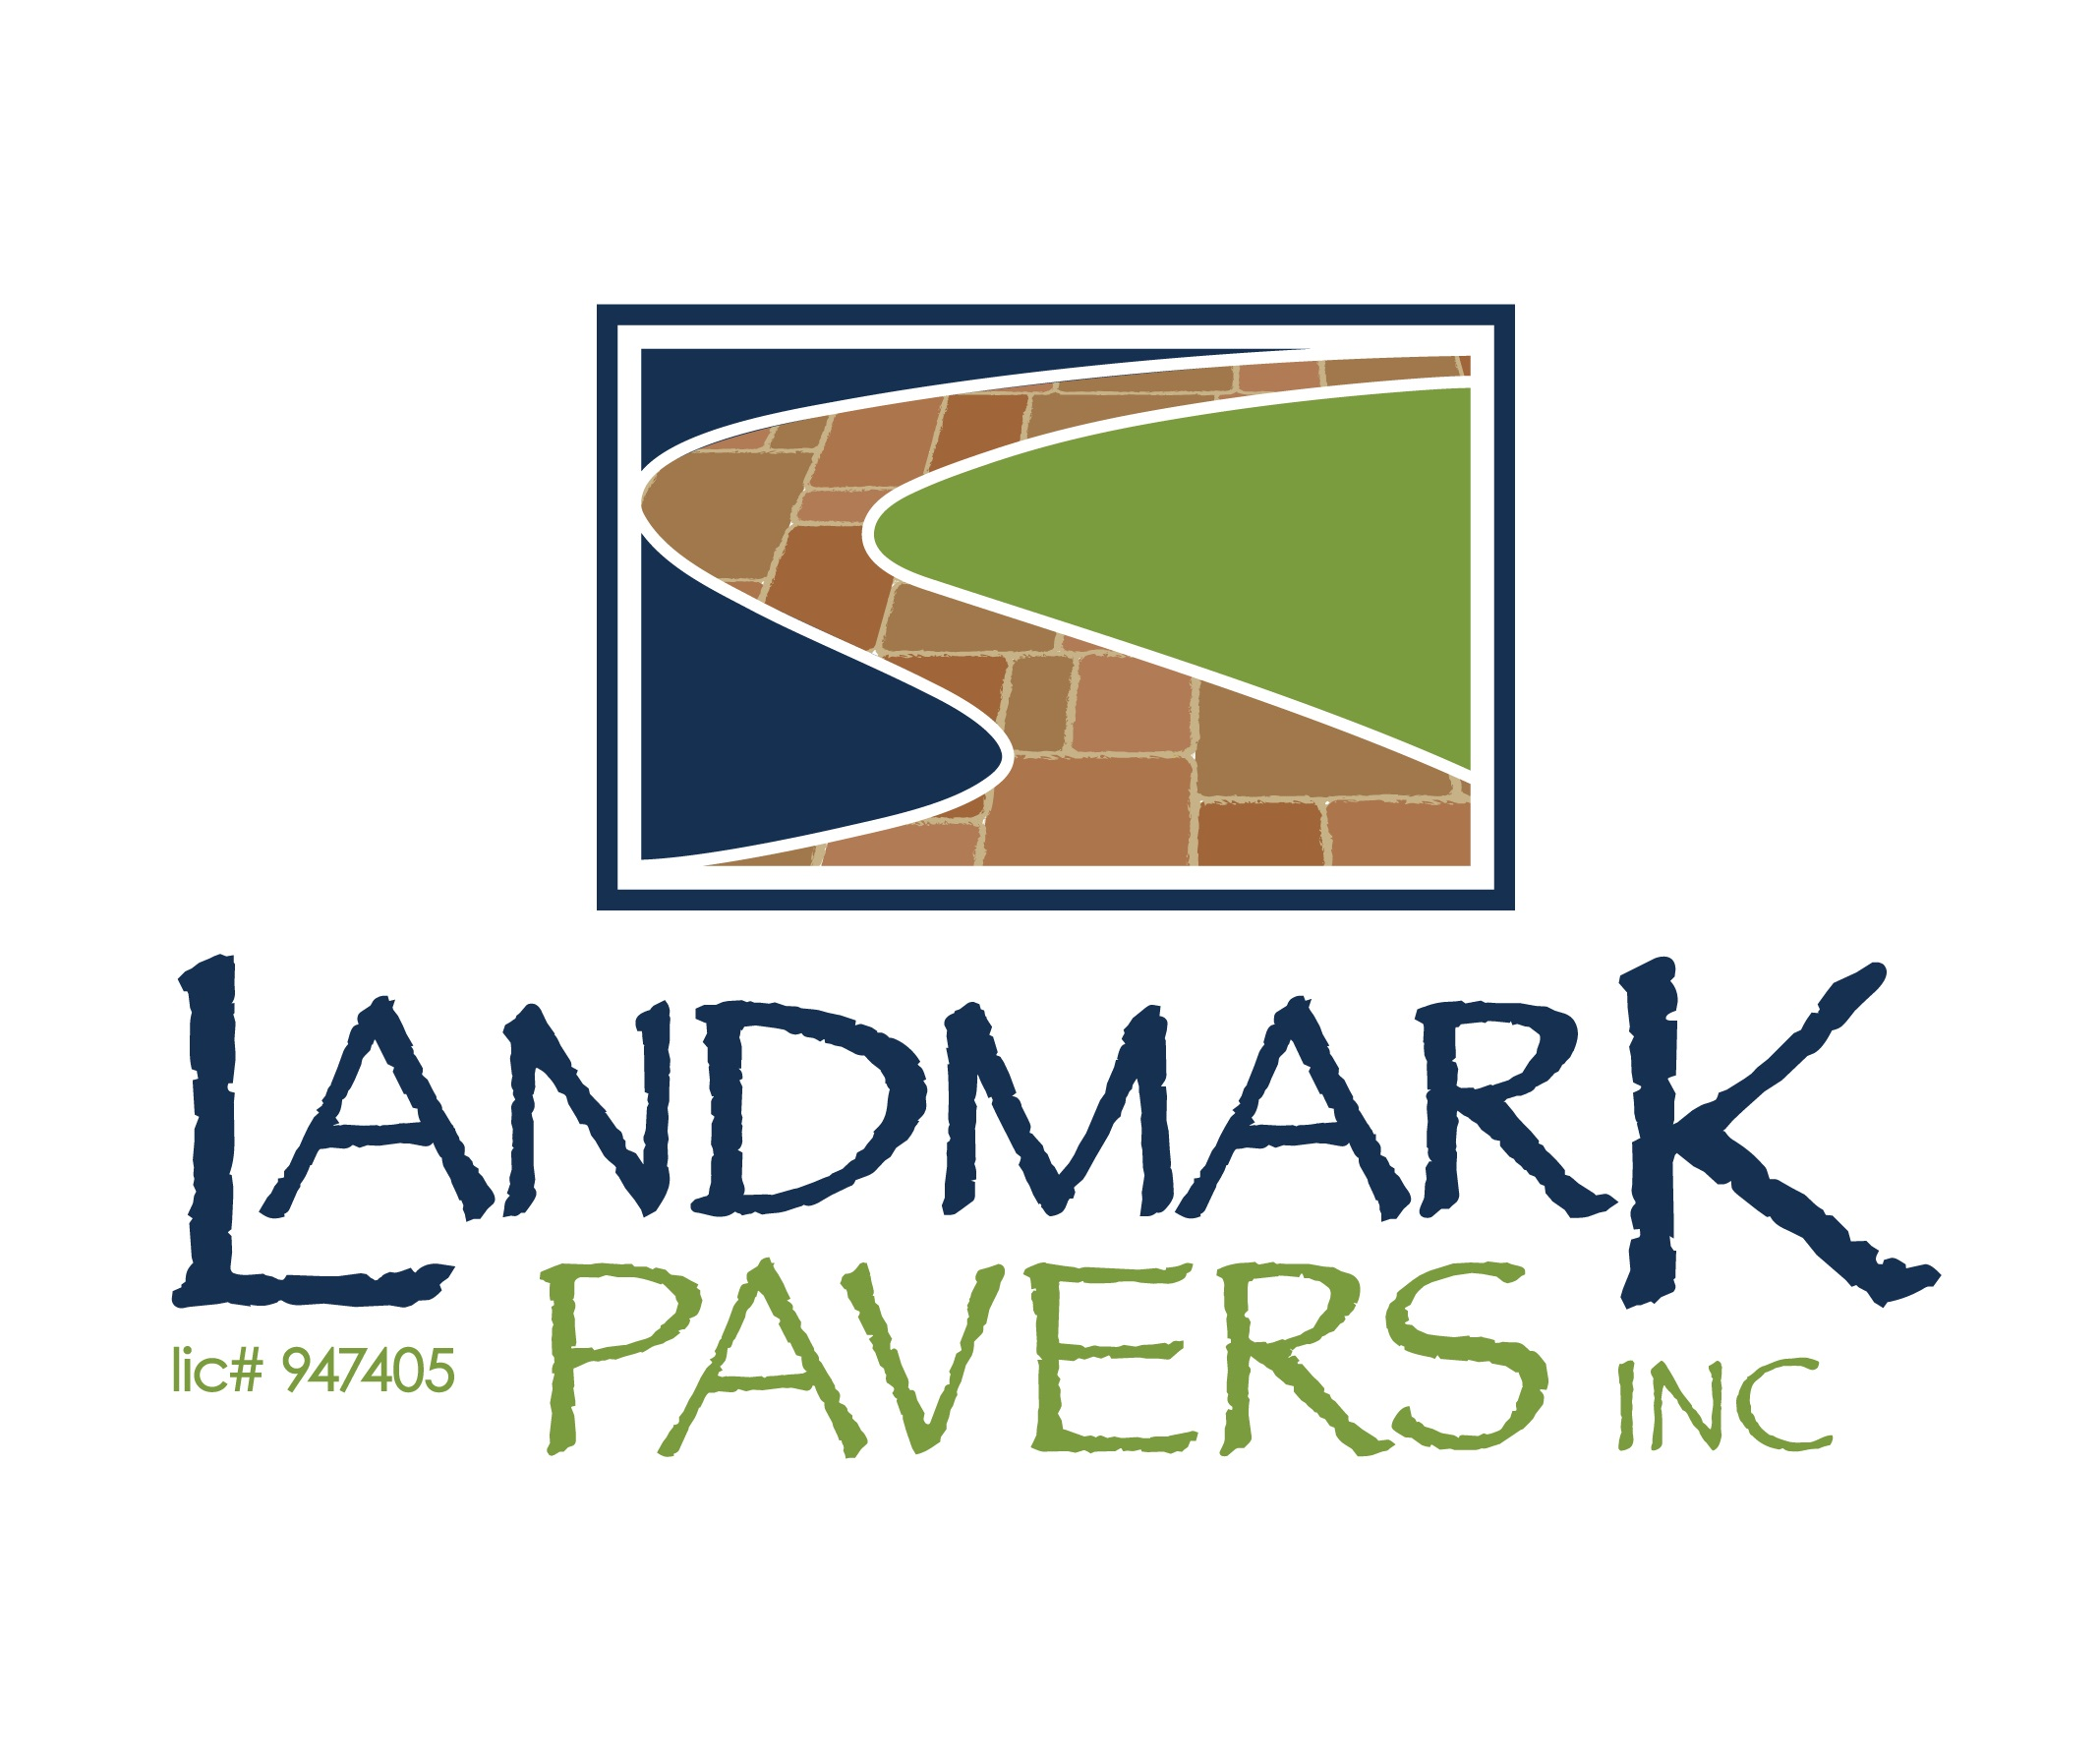 Landmark-Pavers-Logo - COLOR w License # - round.jpg